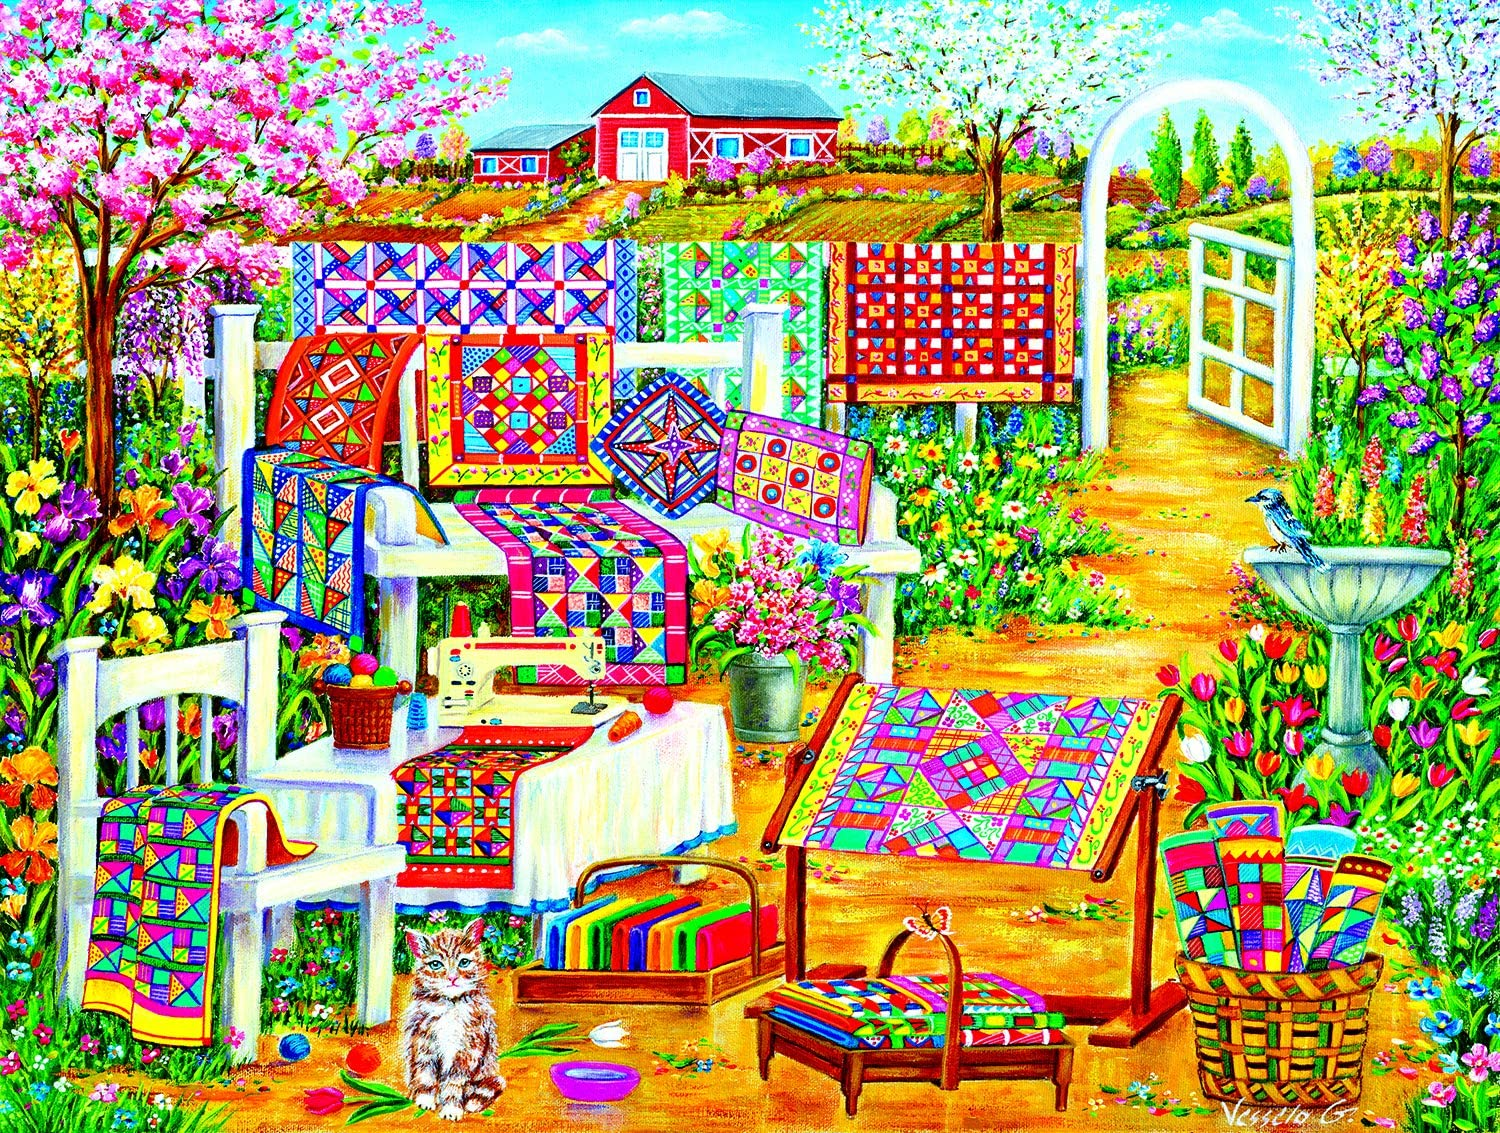 Garden Quilting 500 pc Jigsaw Puzzle by SunsOut